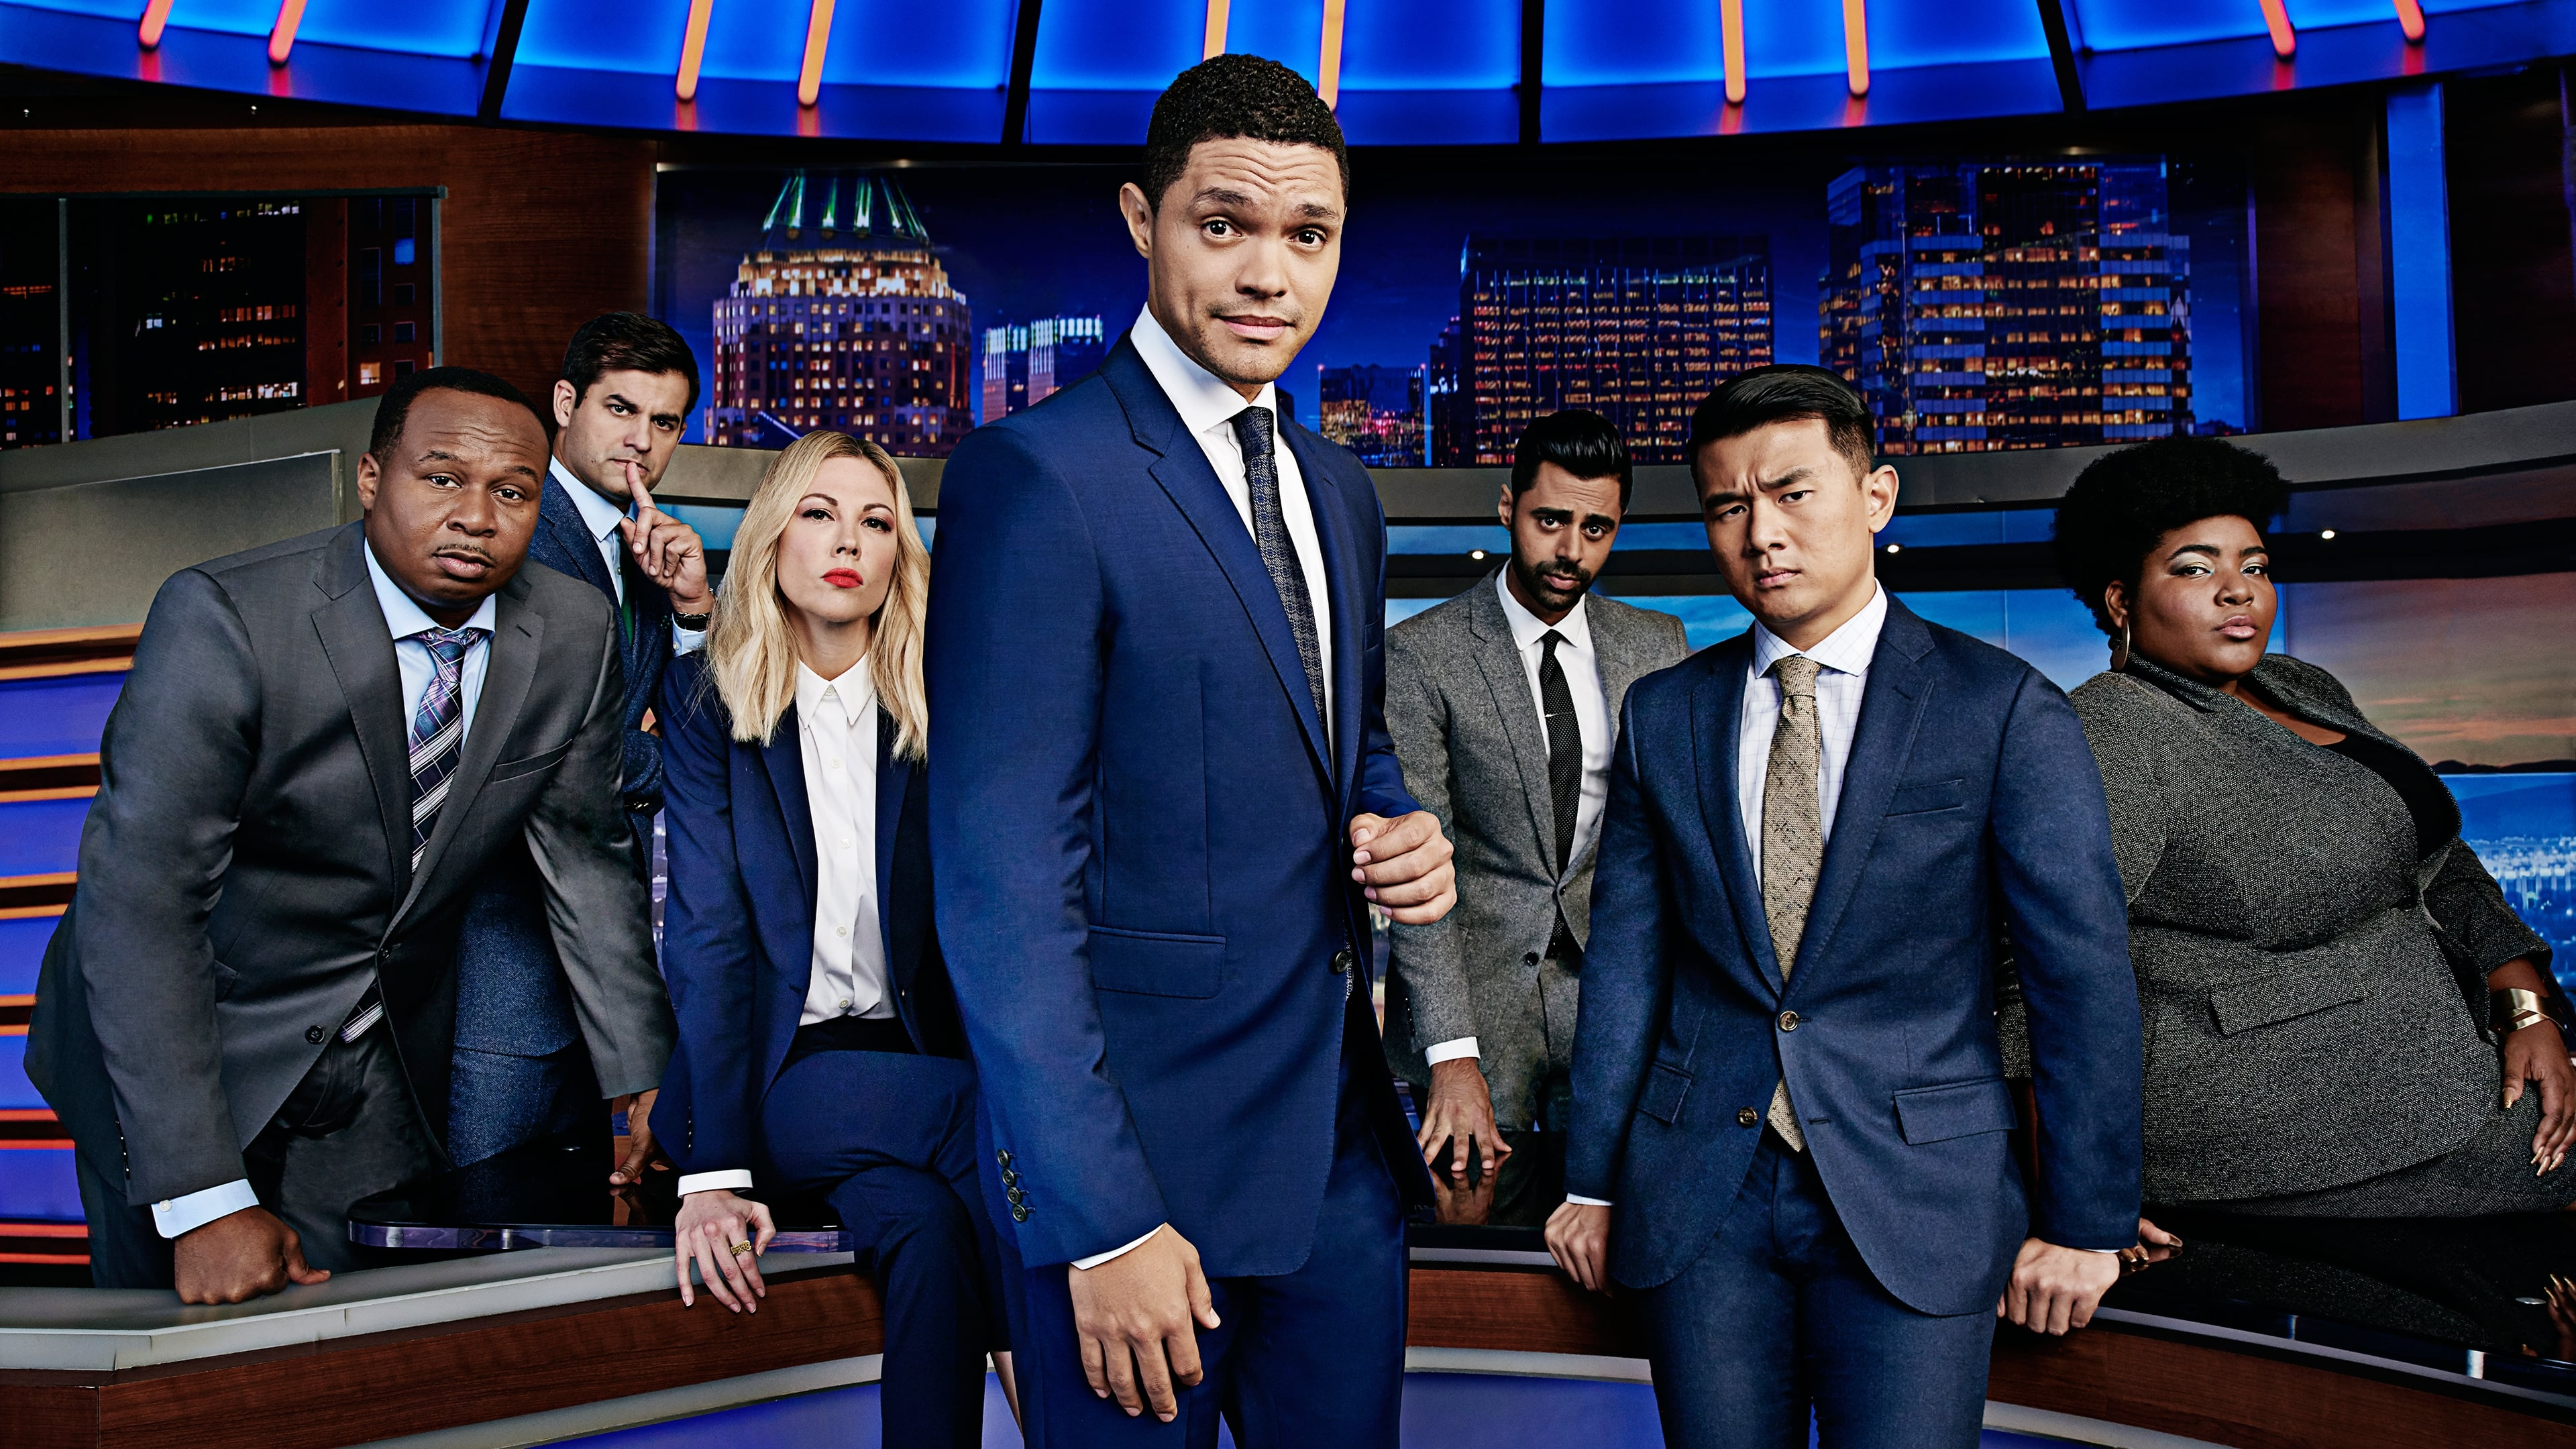 The Daily Show with Trevor Noah - Season 11